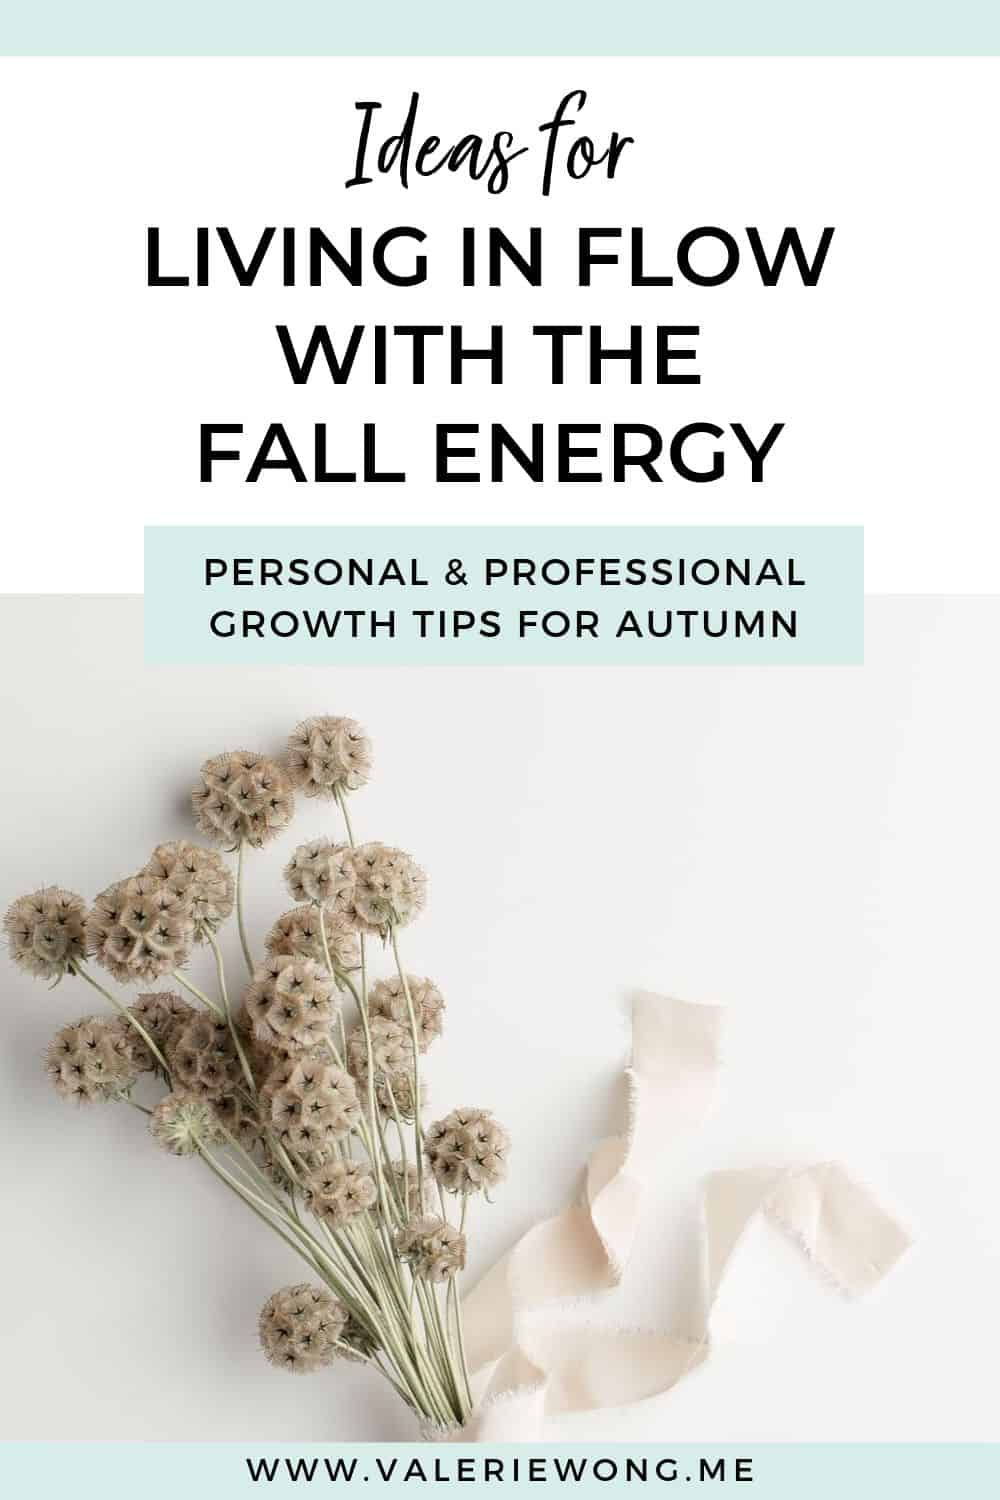 How to flow with the energy of the Fall season | As part of my intentional living journey, I'm becoming more attuned to the seasons of the year. I love how living more in alignment & harmony with the seasons and their unique energies gives my life this natural feeling of flow (both personally & professionally). In this post, I'm sharing ideas + inspiration to help you use the Fall vibes to create harmony in your life. | Valerie Wong #valeriewong #fallseason #autumn #fallvibes #intentionalliving via @valeriewonglifecoach